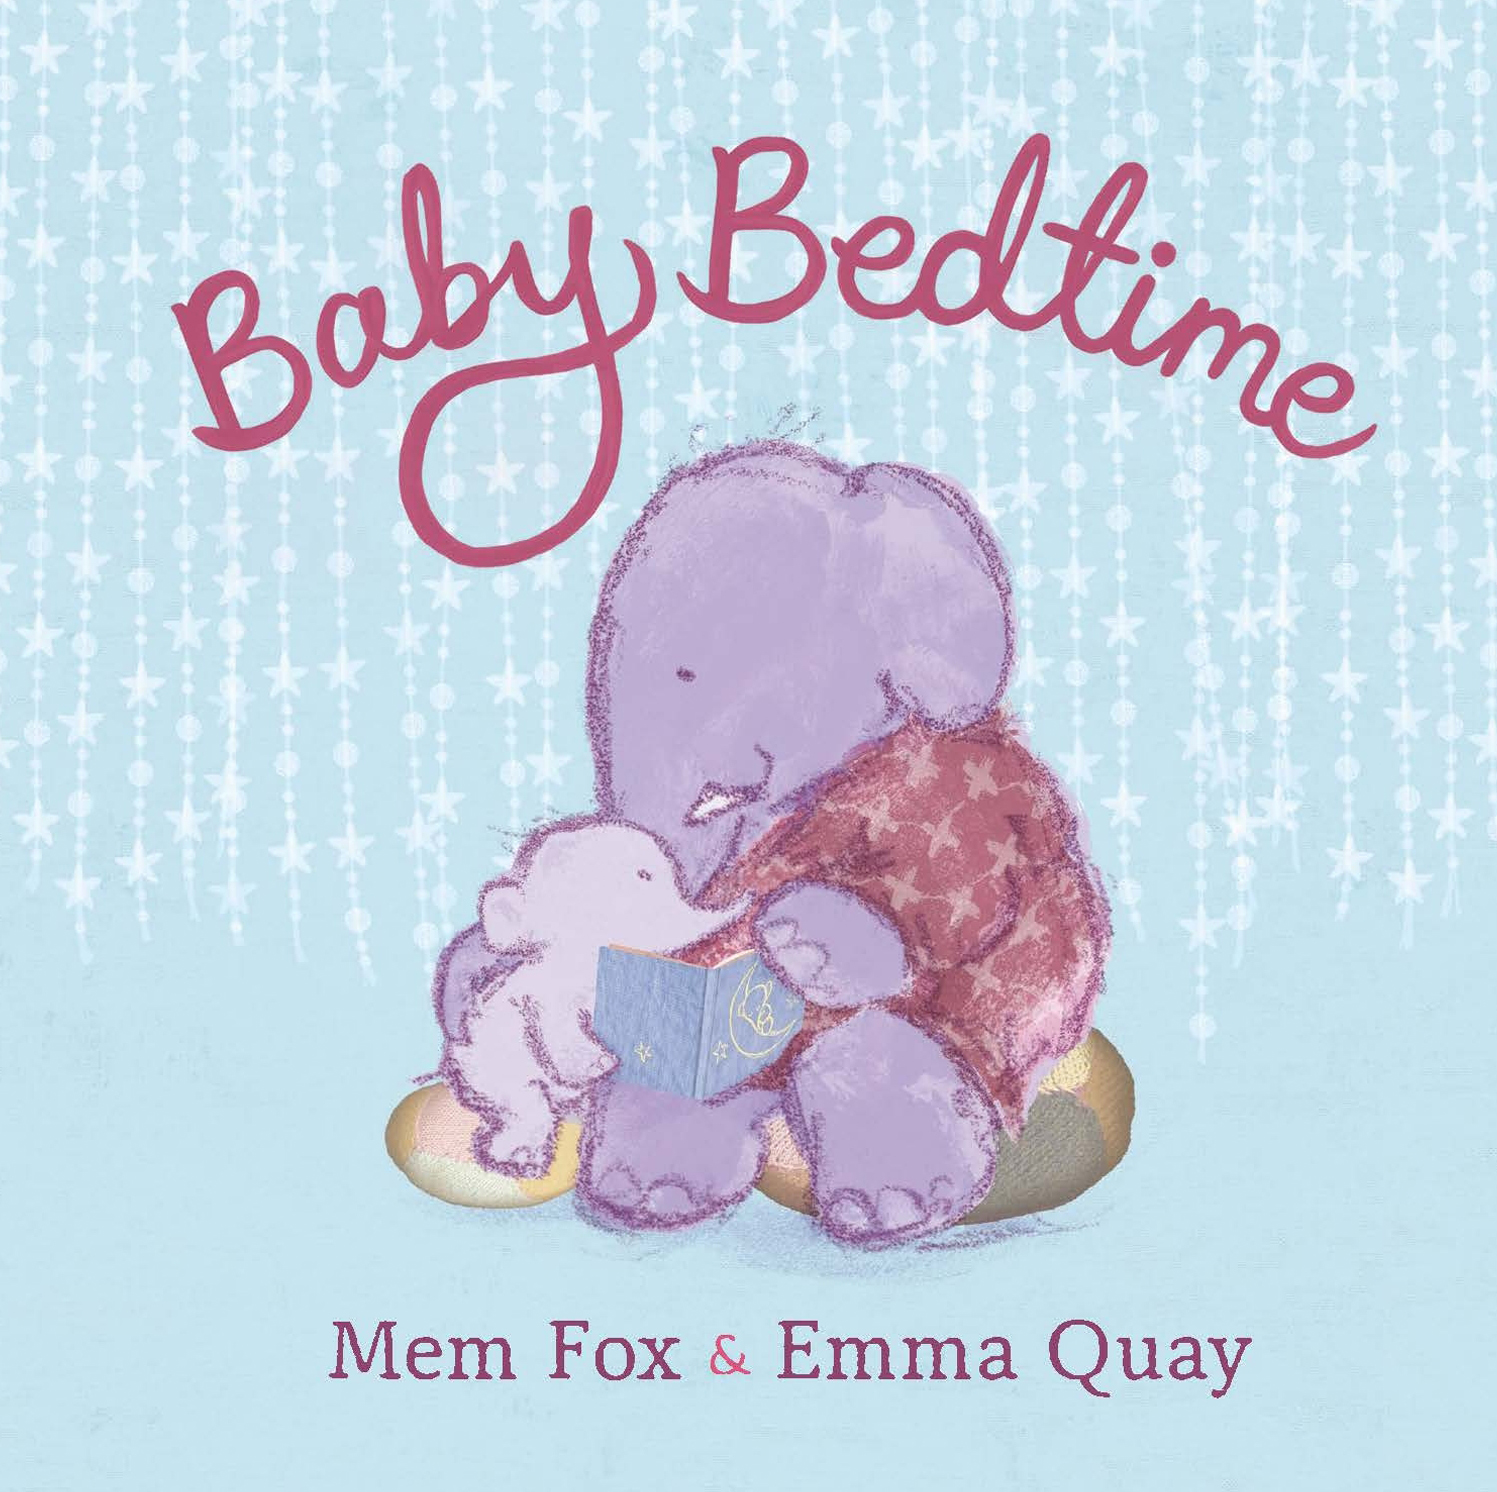 BABY BEDTIME by Mem Fox & Emma Quay (Viking/Penguin Books Australia | Beach Lane Books, USA) - www.emmaquay.com